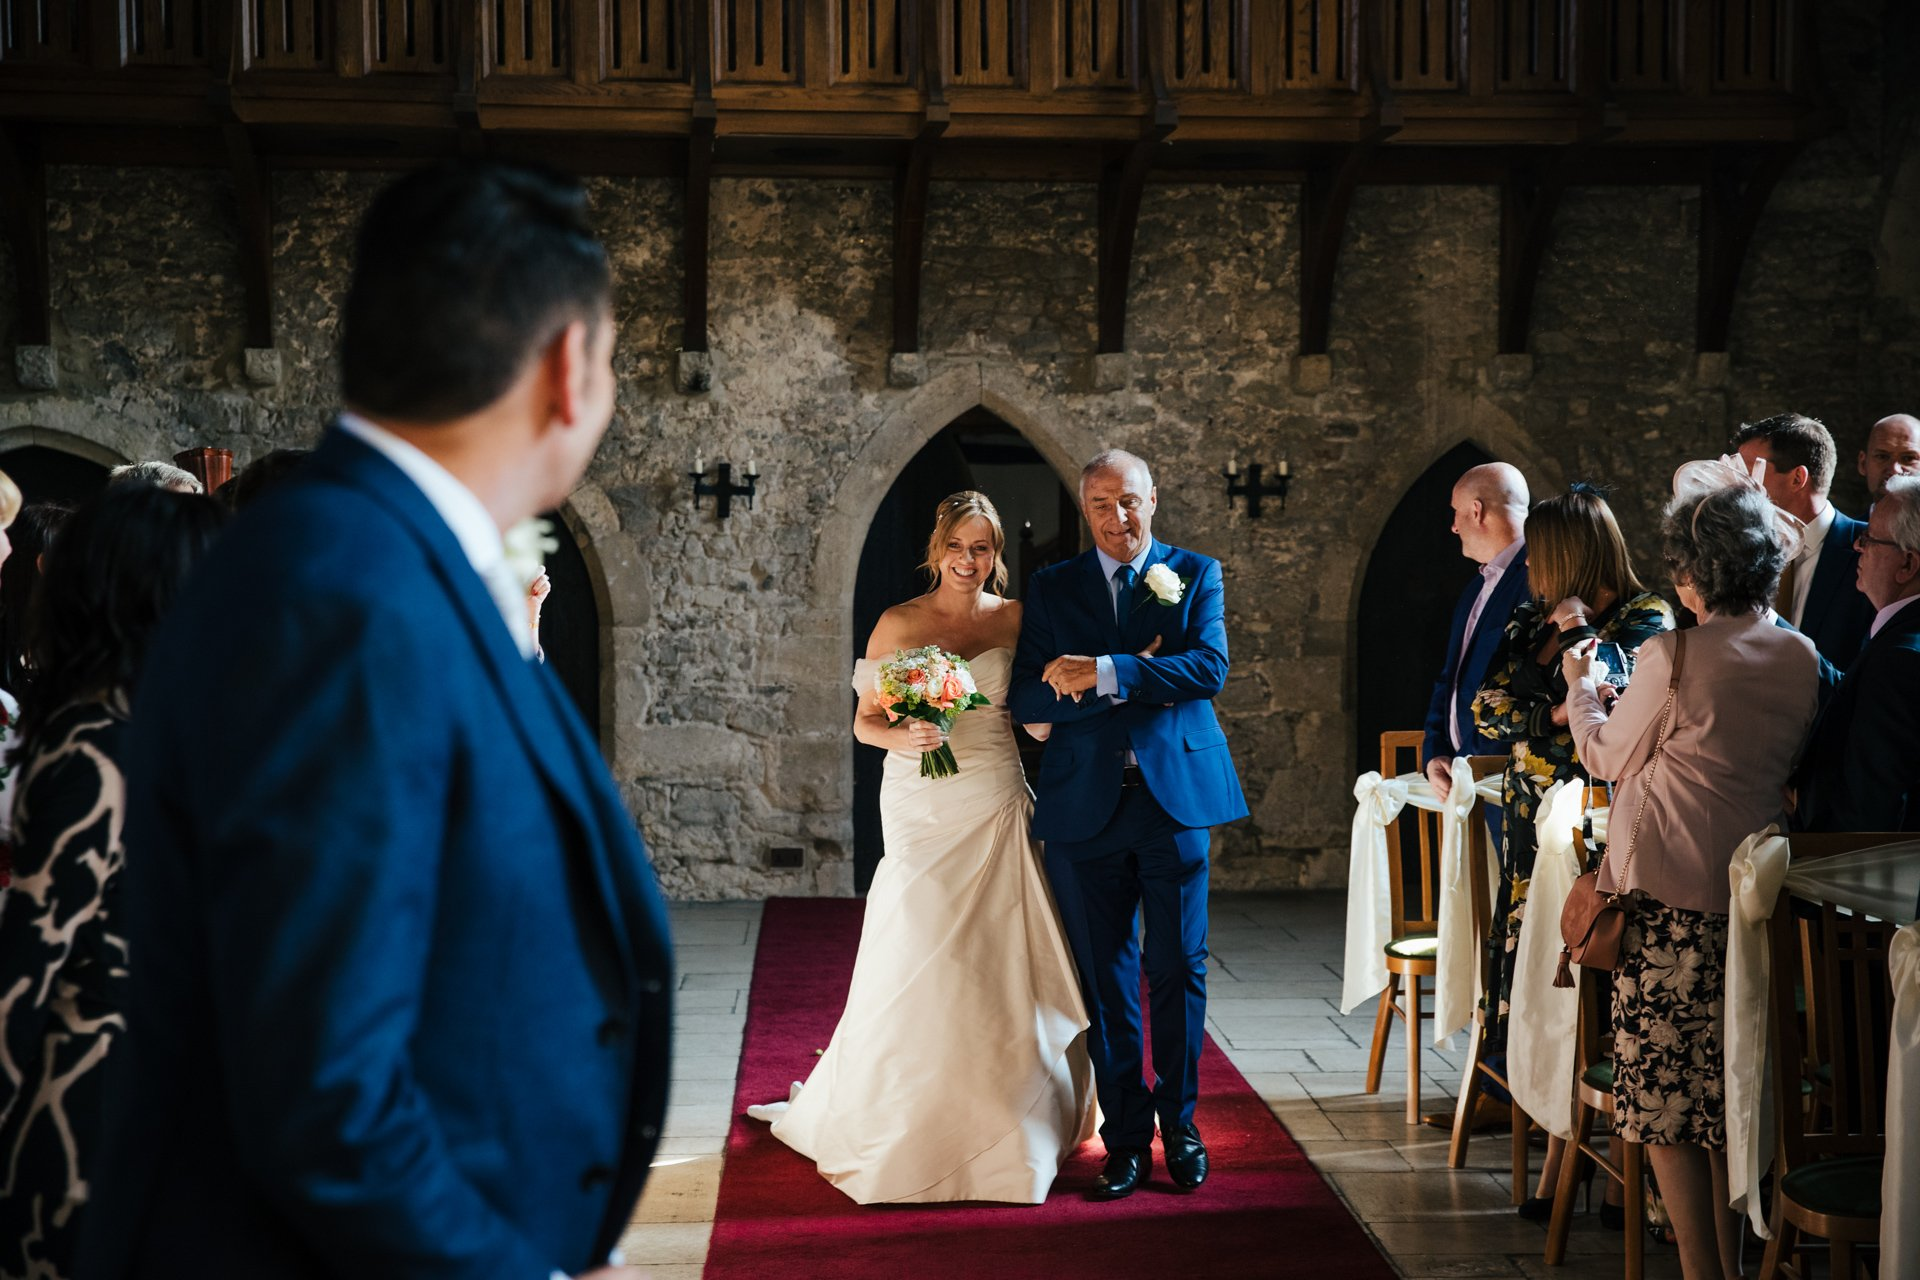 Bride being walked down the aisle by her father towards her groom at Allington Castle, Kent wedding venue